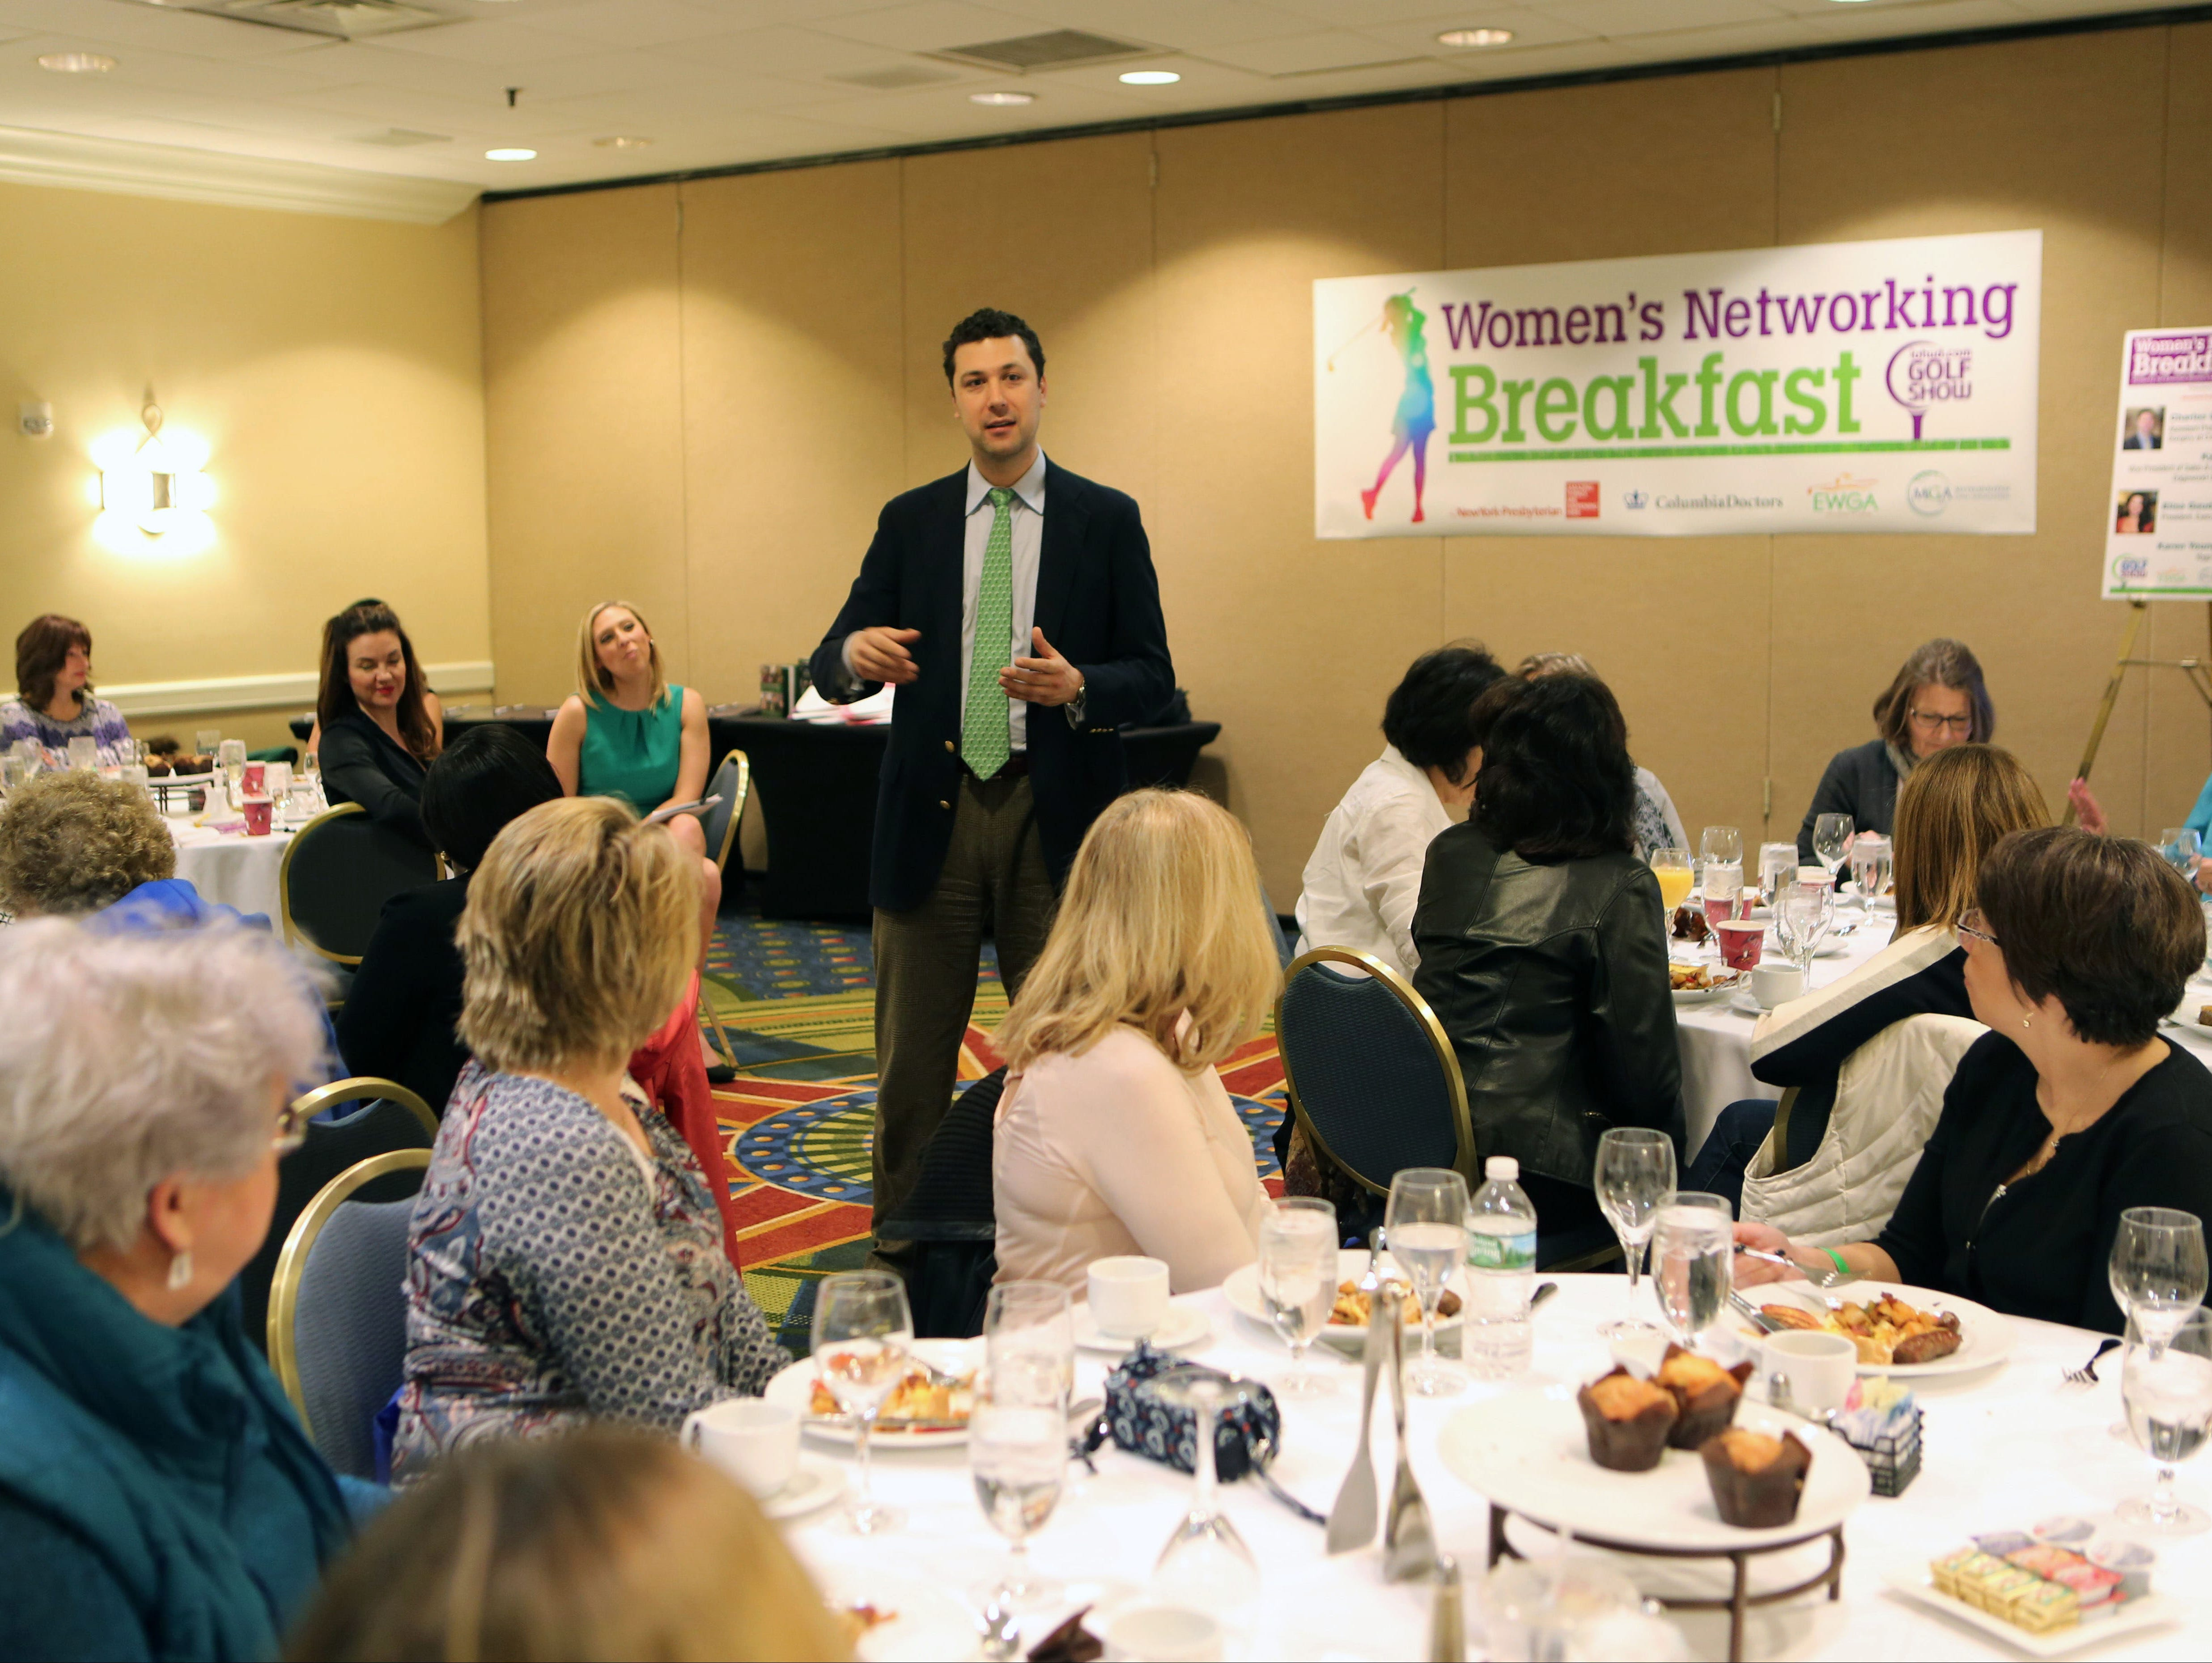 Charles M. Jobin, M.D. addresses orthopedic concerns during the Women's Networking breakfast at the lohud.com Golf Show at the Westchester Marriott in Tarrytown, March 12, 2016. The show continues Sunday, March 13, 2016 from 9:00 a.m. till 4:00 p.m.